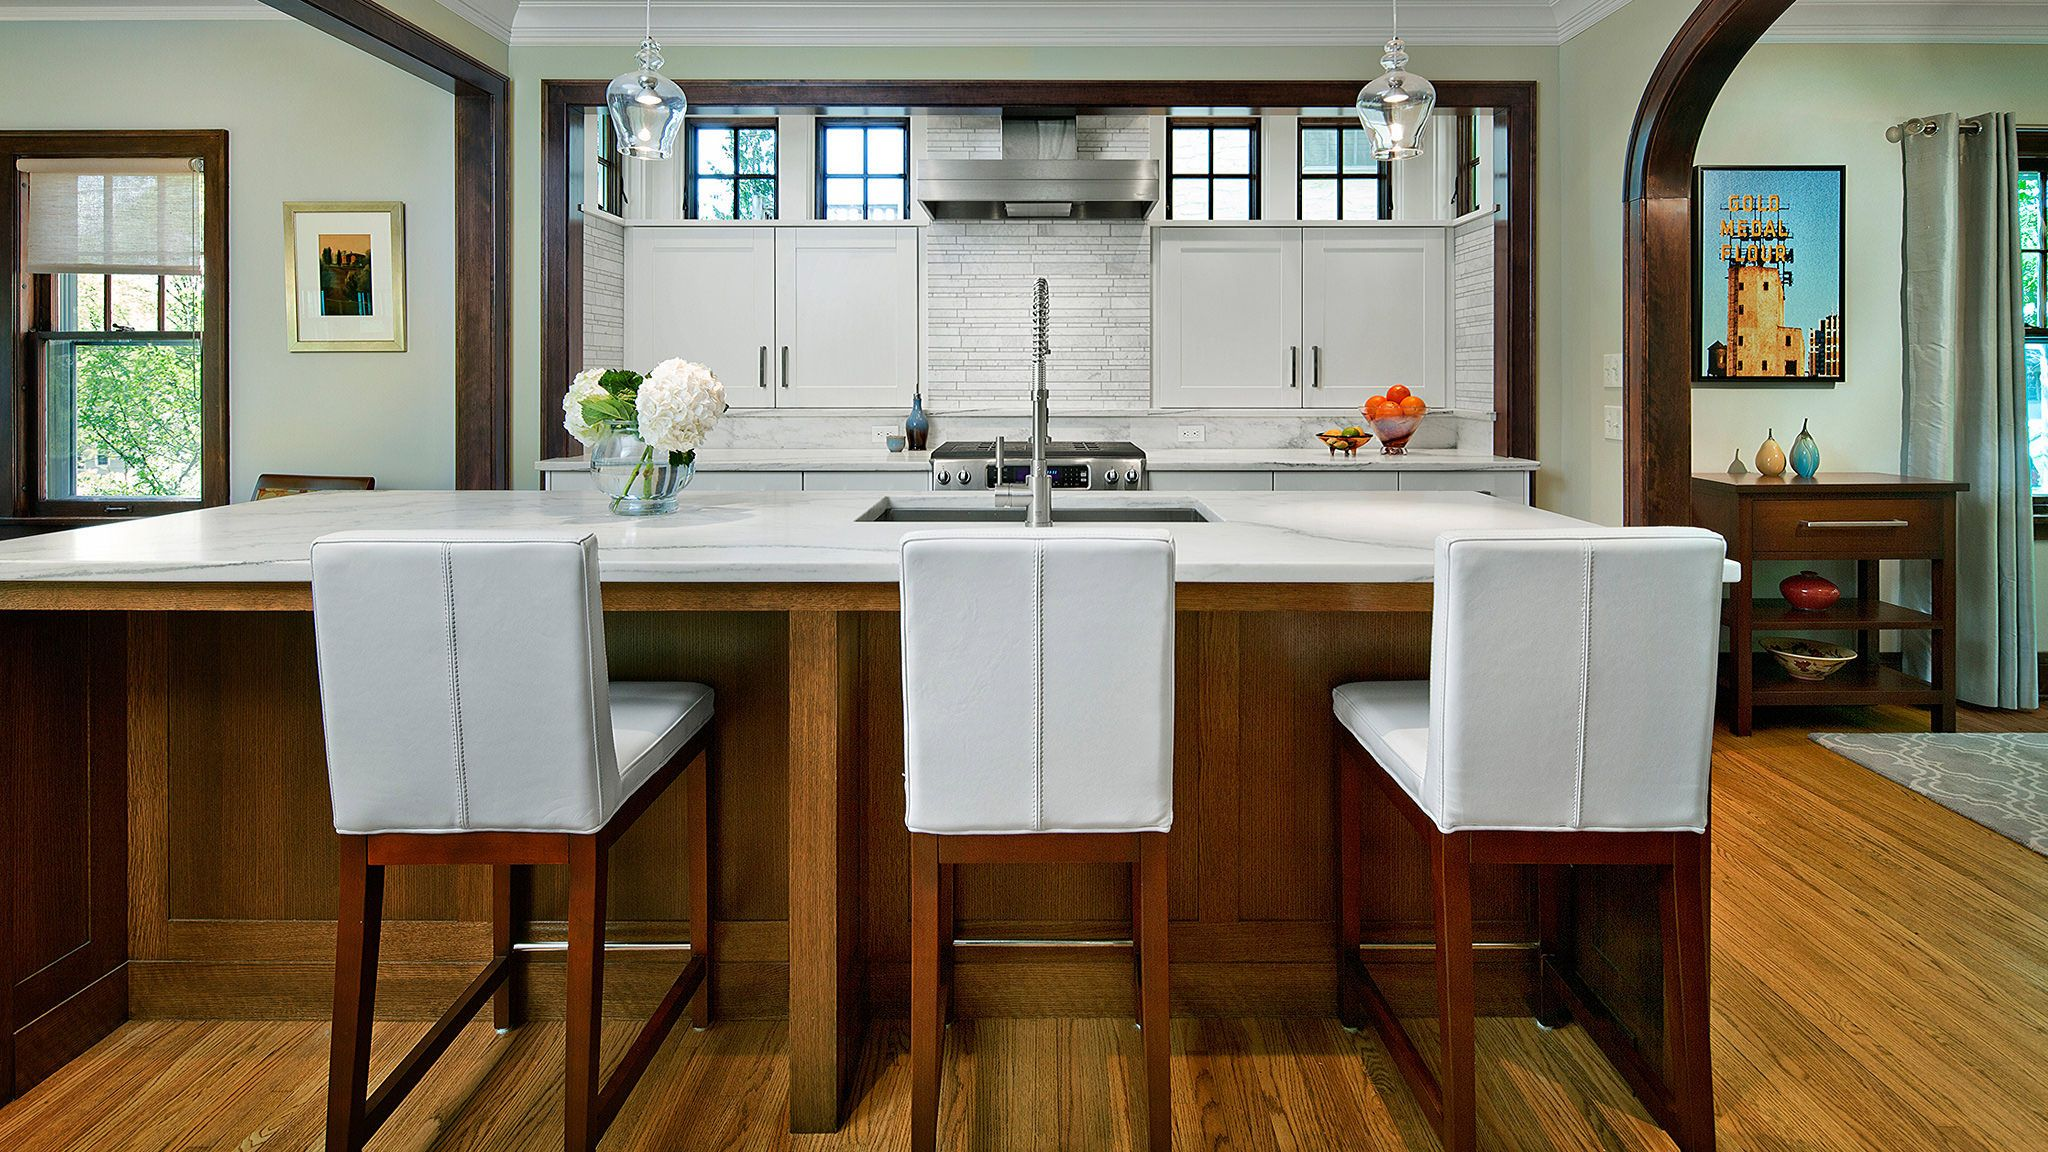 Kitchen Designer Salary Pleasing Morgan Kitchen From Entry A&h Architecture  Remodel  Pinterest Design Decoration